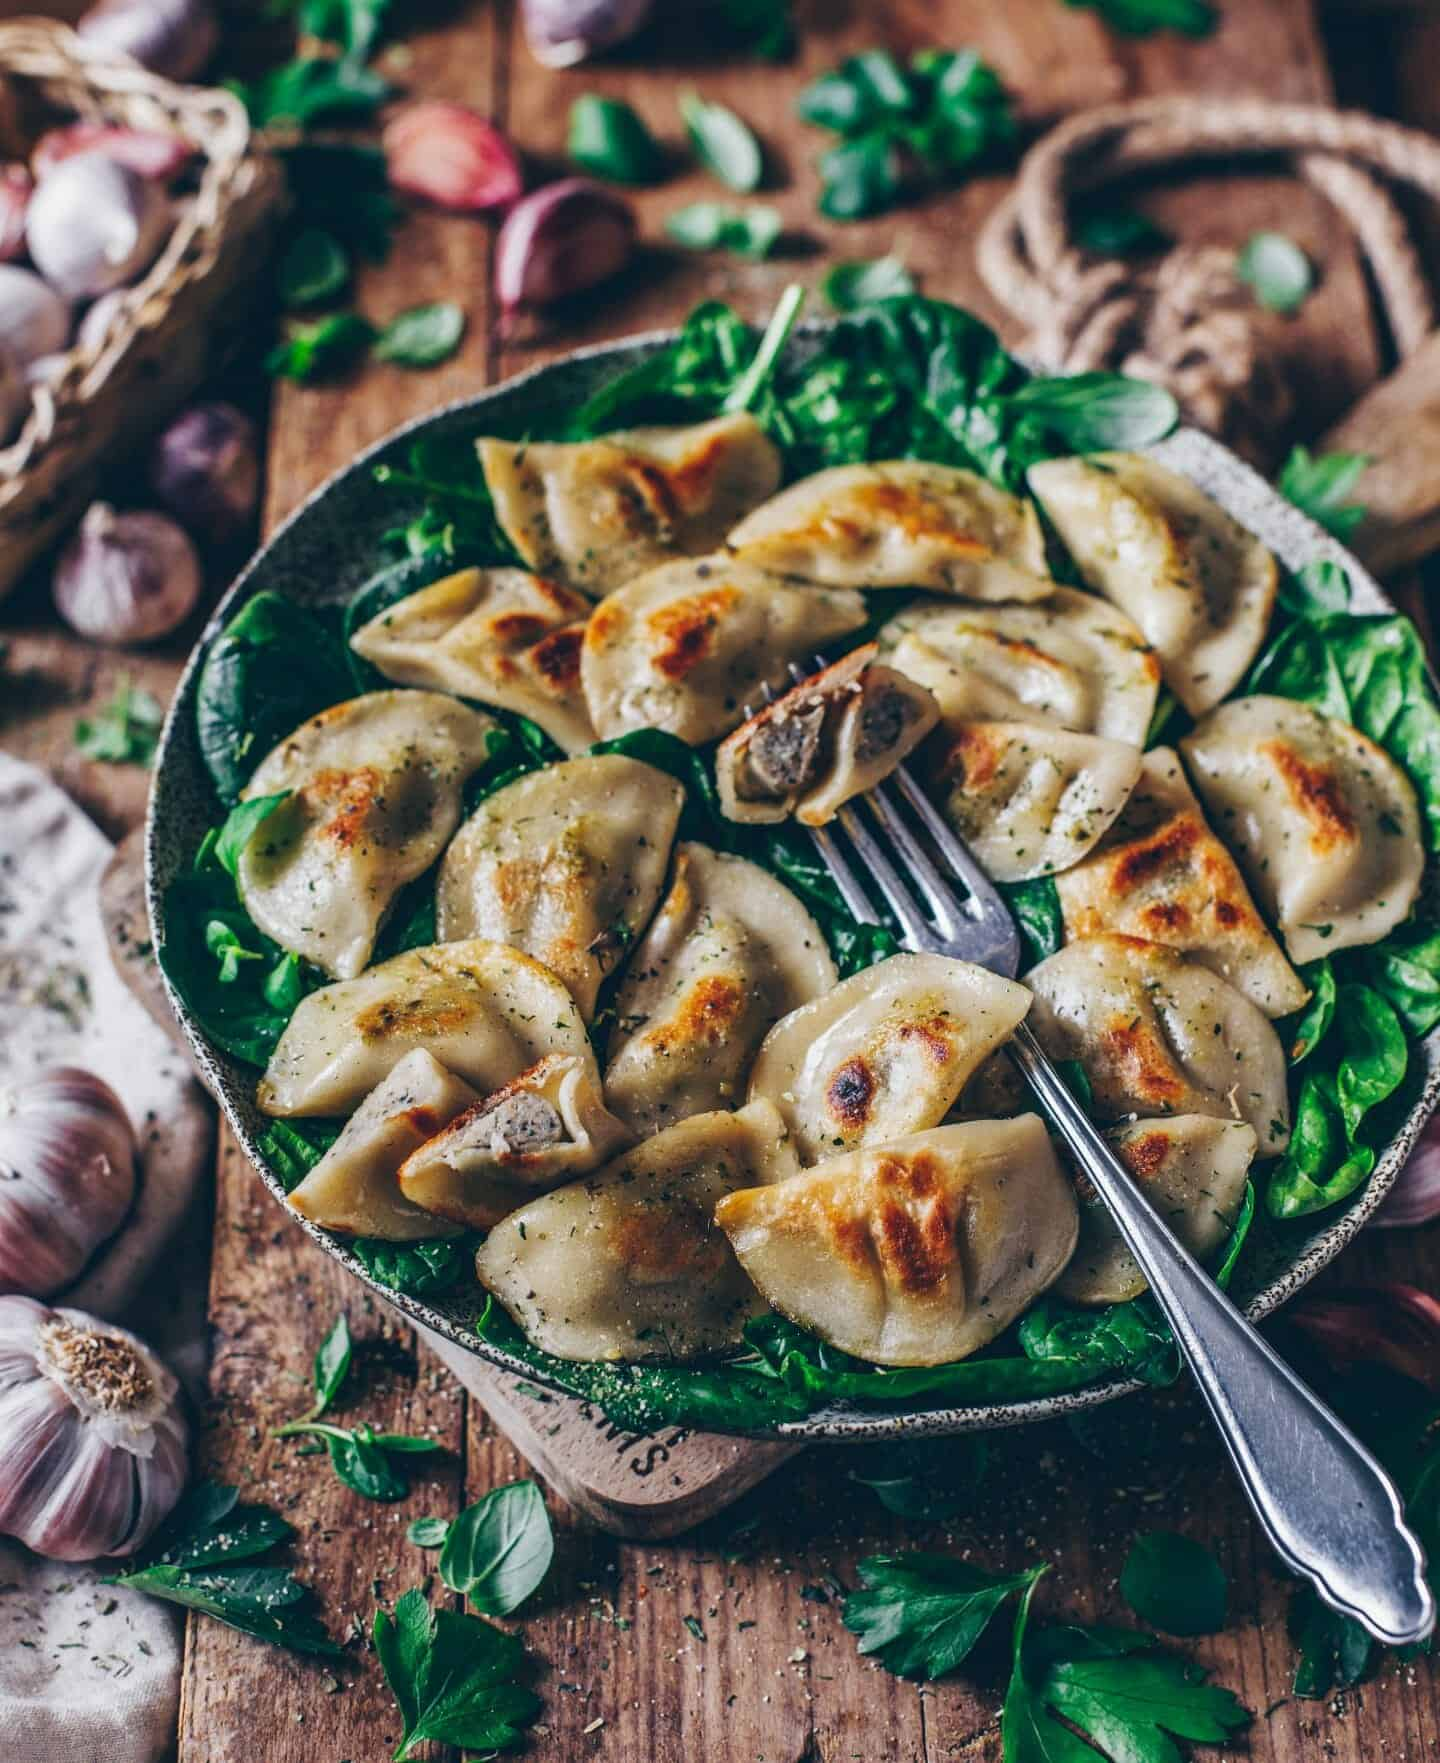 recipe for easy vegan pierogi with mushroom filling, polish pasta dumplings, vegan ravioli, mushrooms, spinach, delicious, simple, gluten-free, egg-free, dairy-free, healthy